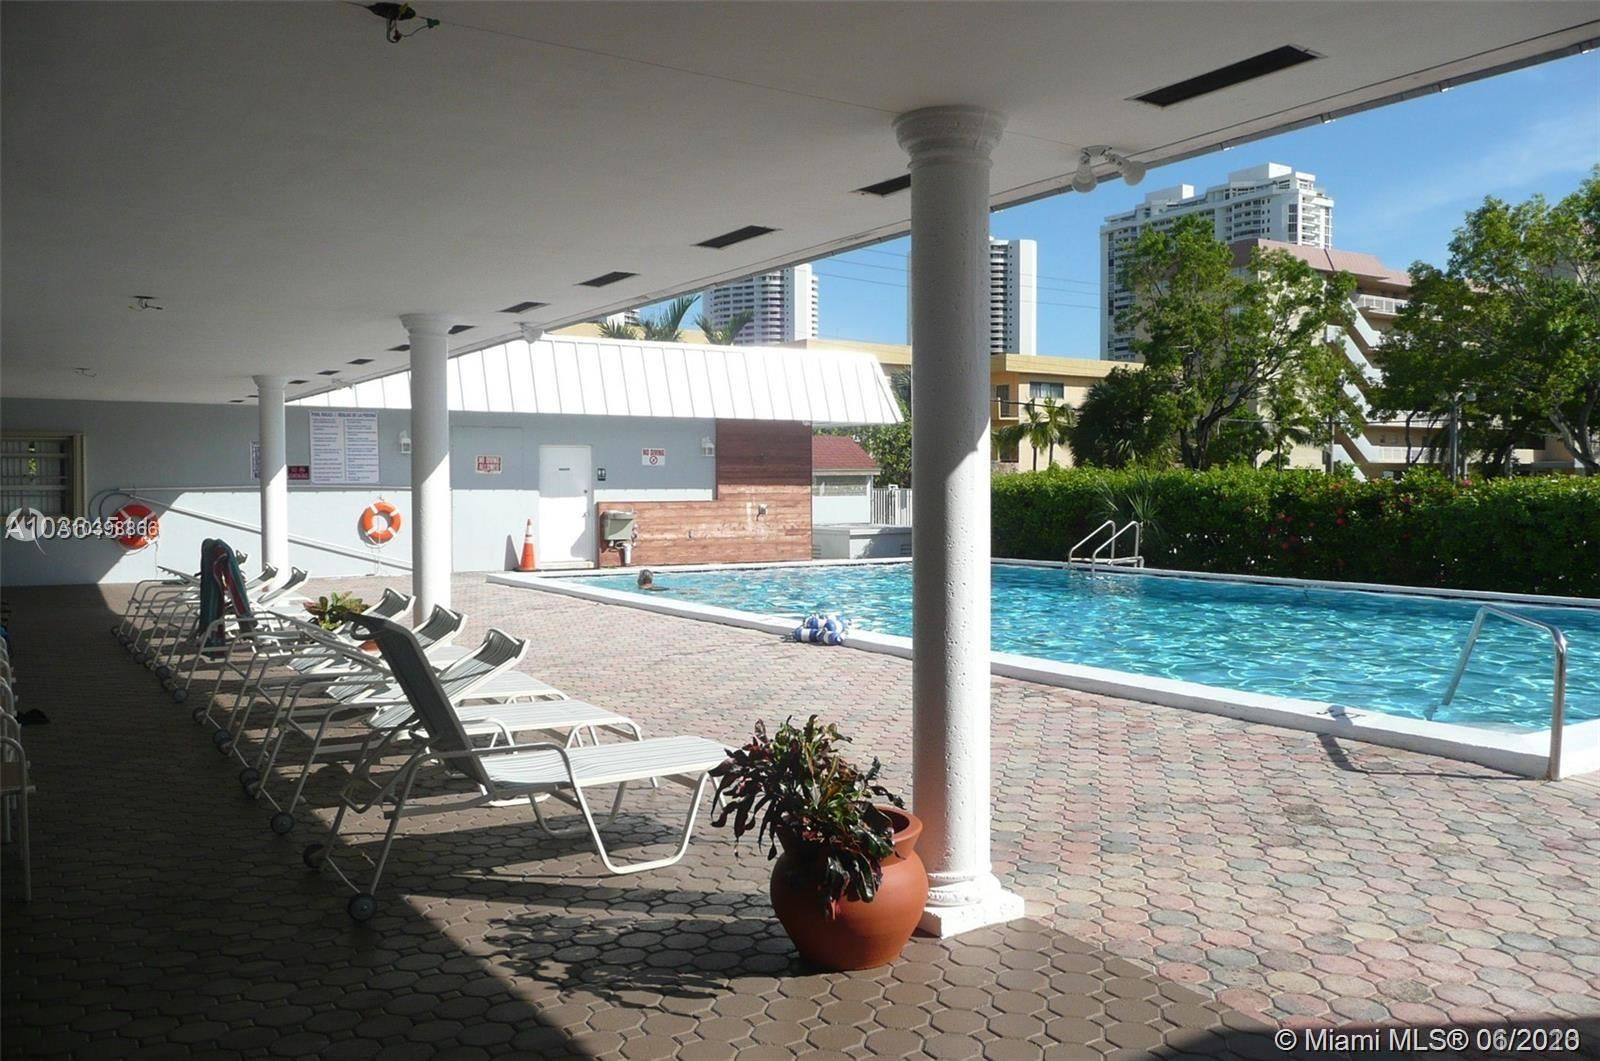 3550 NE 169th St #306, North Miami Beach, FL 33160 - #: A10398866